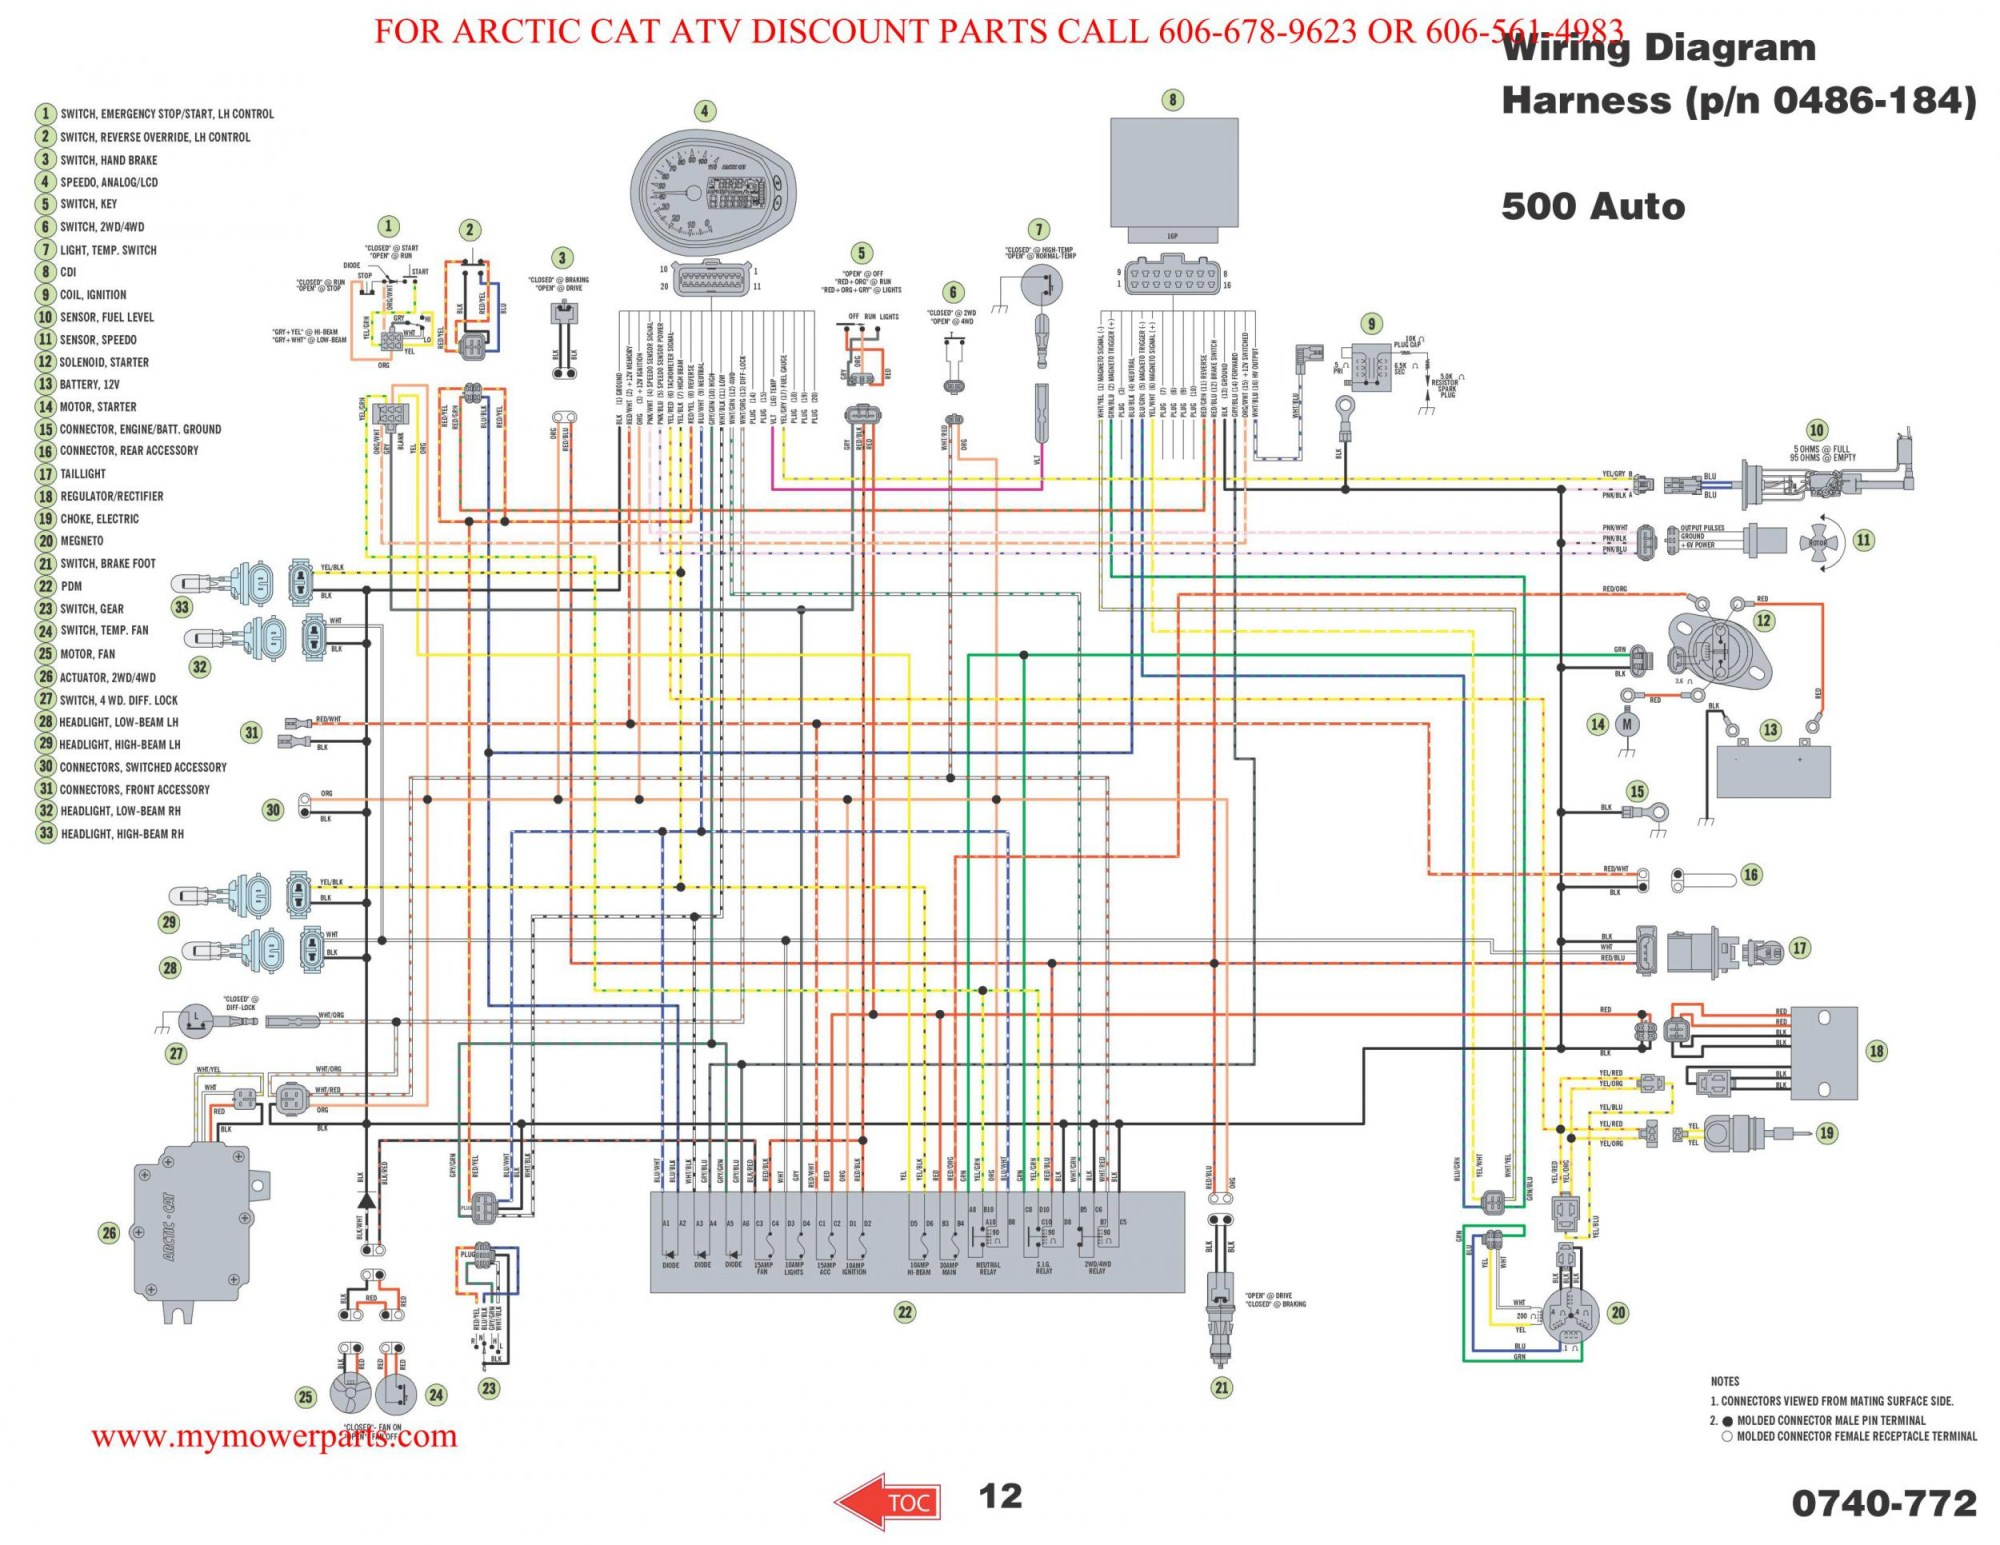 hight resolution of arctic cat 300 atv wiring diagram wiring diagram expert